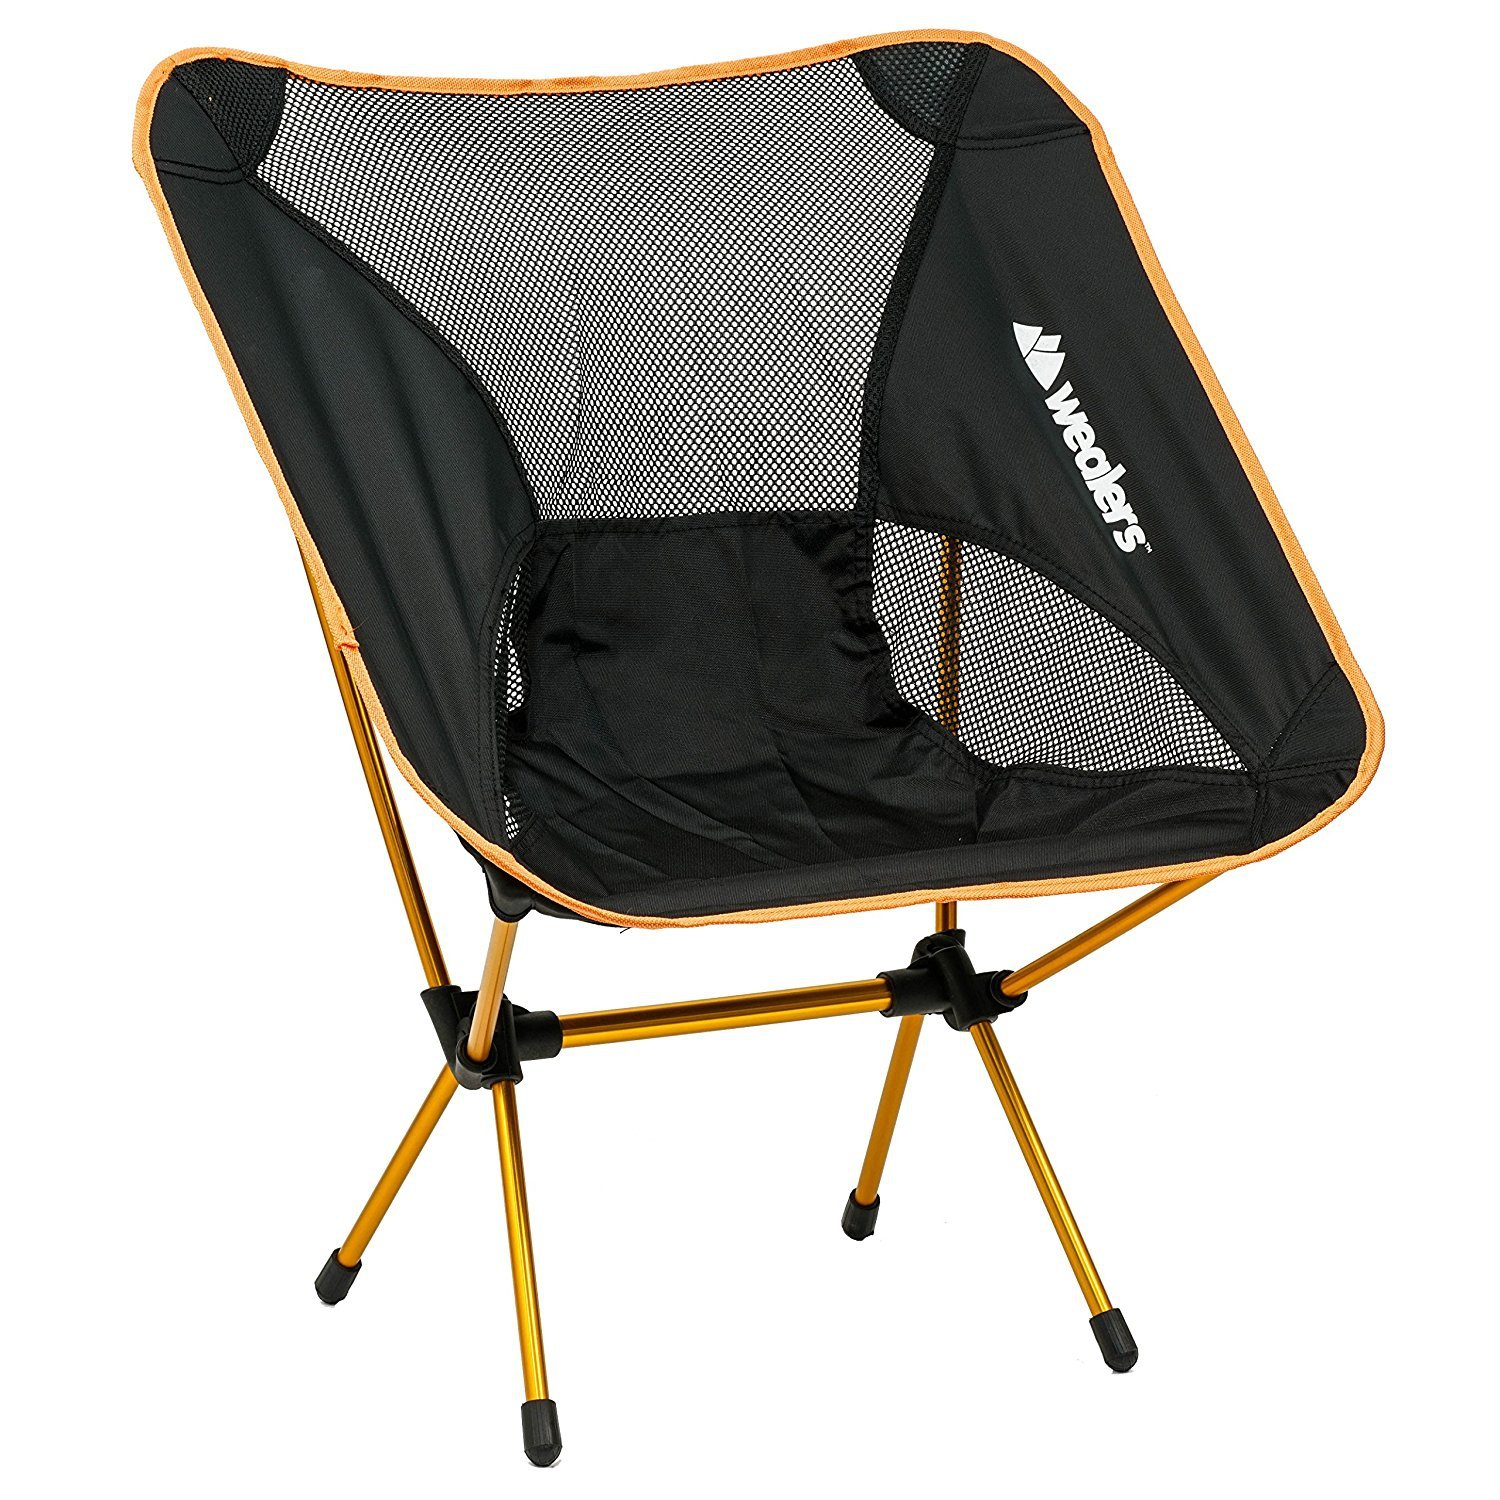 Compact Foldable Beach backpacking Chair Potable Stool Made Of Ultra Lightweight Aluminium Alloy Super Comfort Perfect for Sport Outdoor Events, Camping, Fishing, Picnic, By Wealers